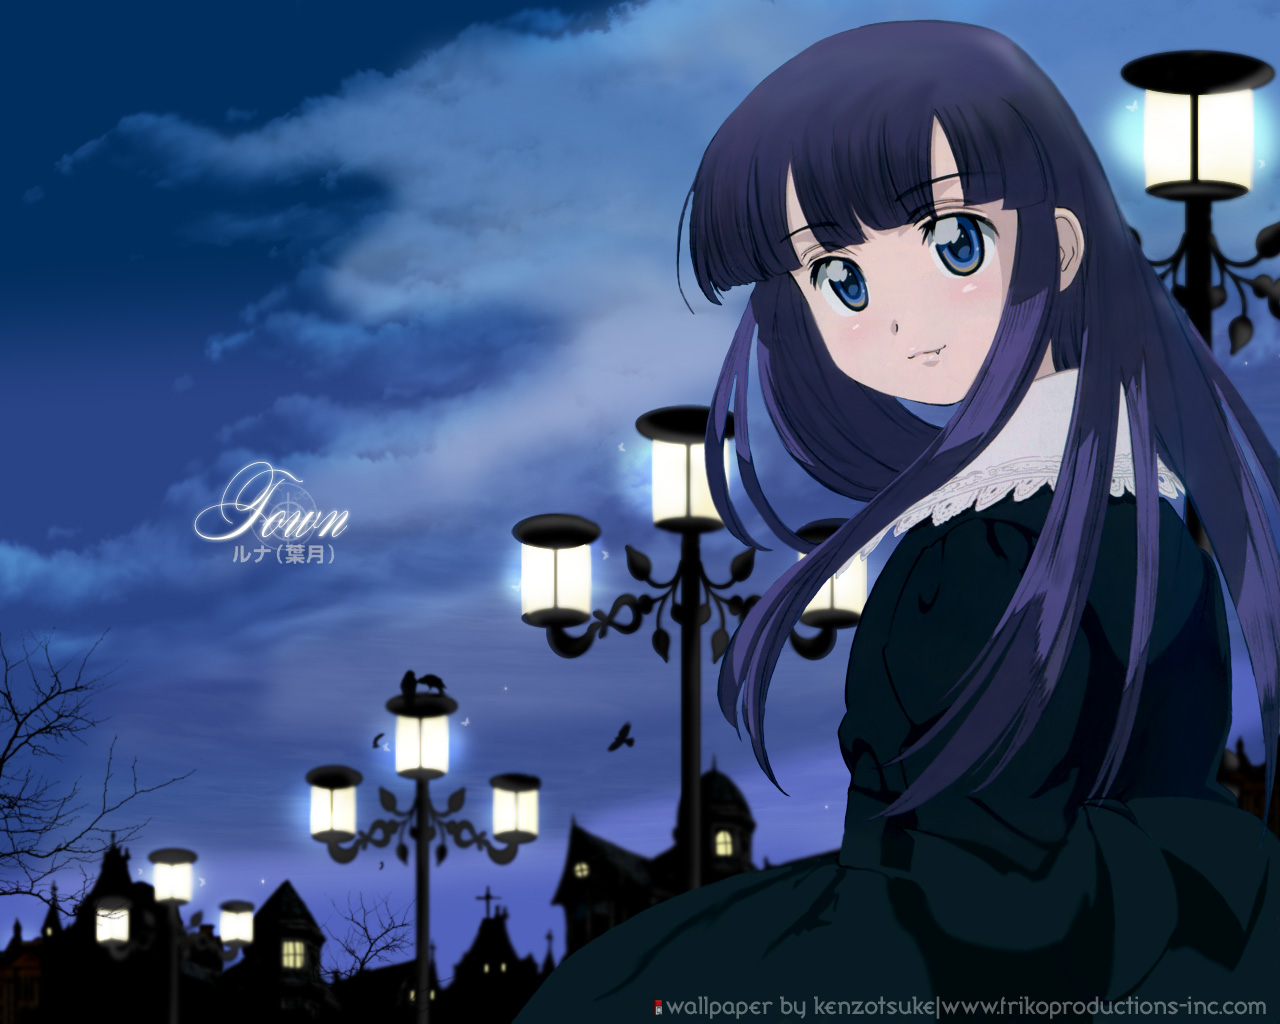 Images of Tsukuyomi: Moon Phase | 1280x1024